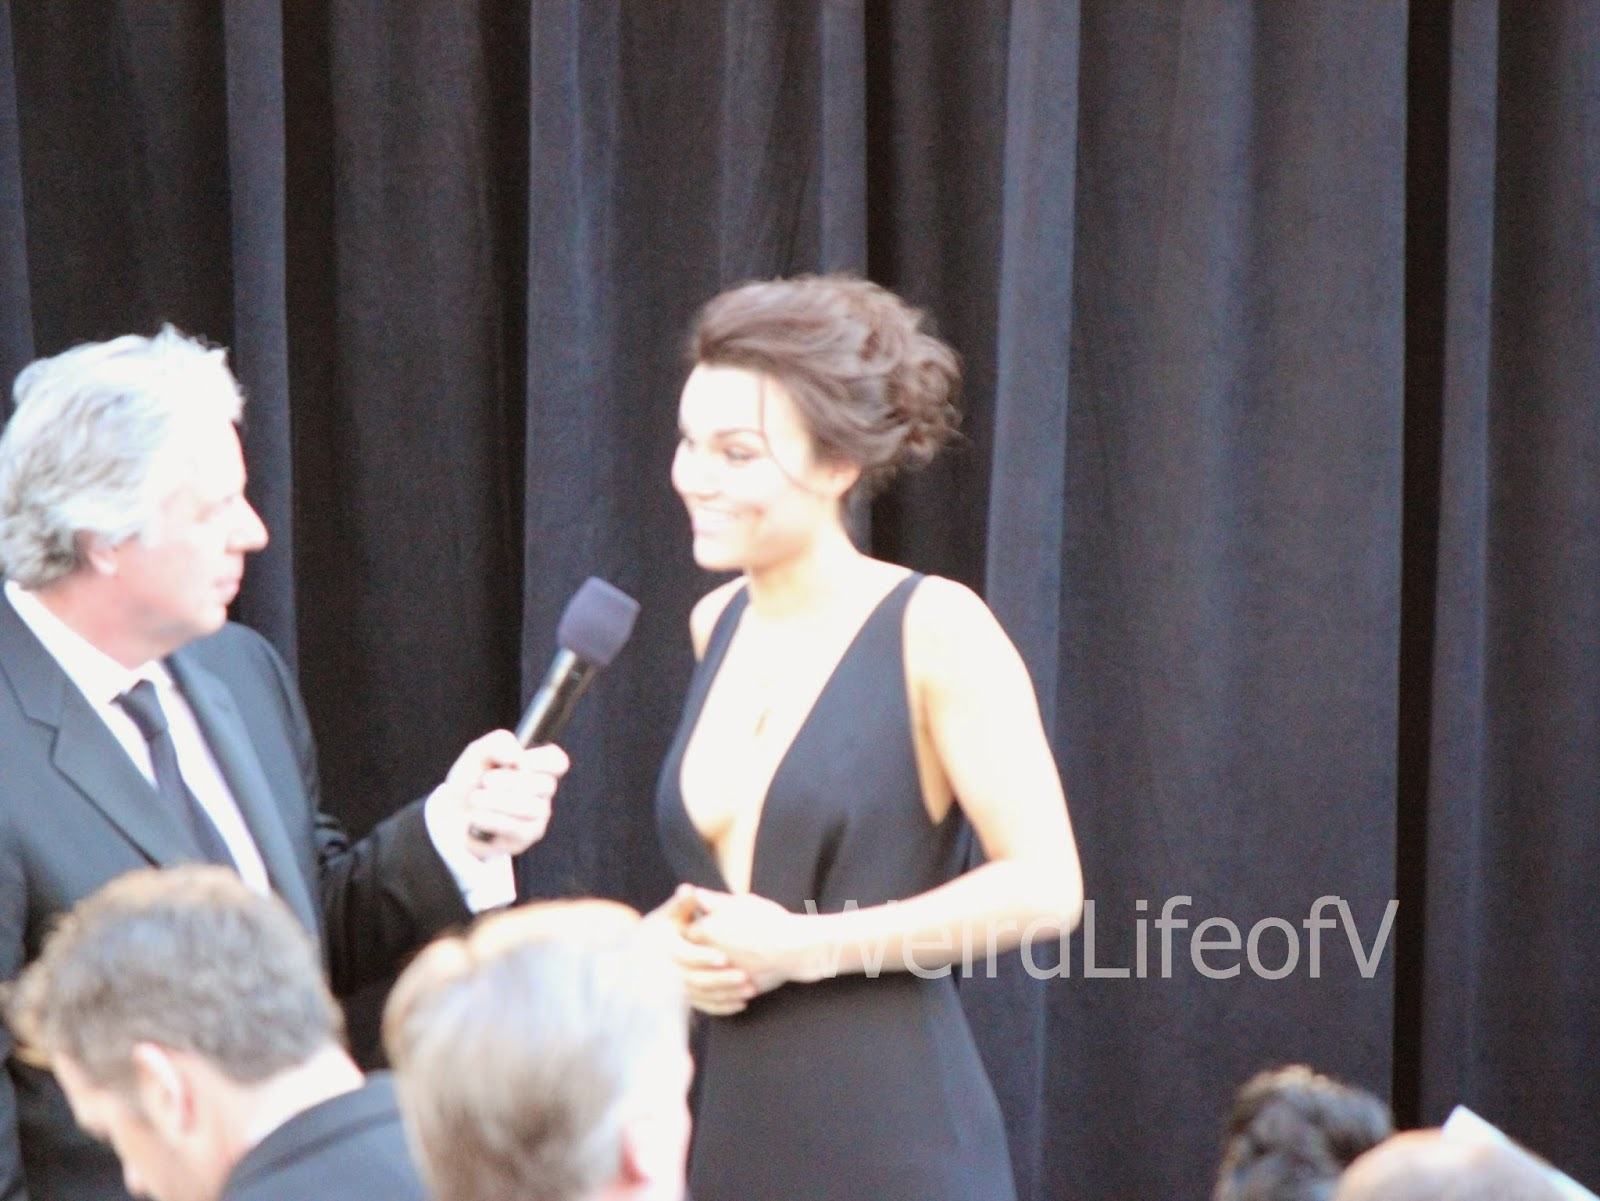 Samantha Barks being interviewed by Chris Connelly at the 2013 Academy Awards